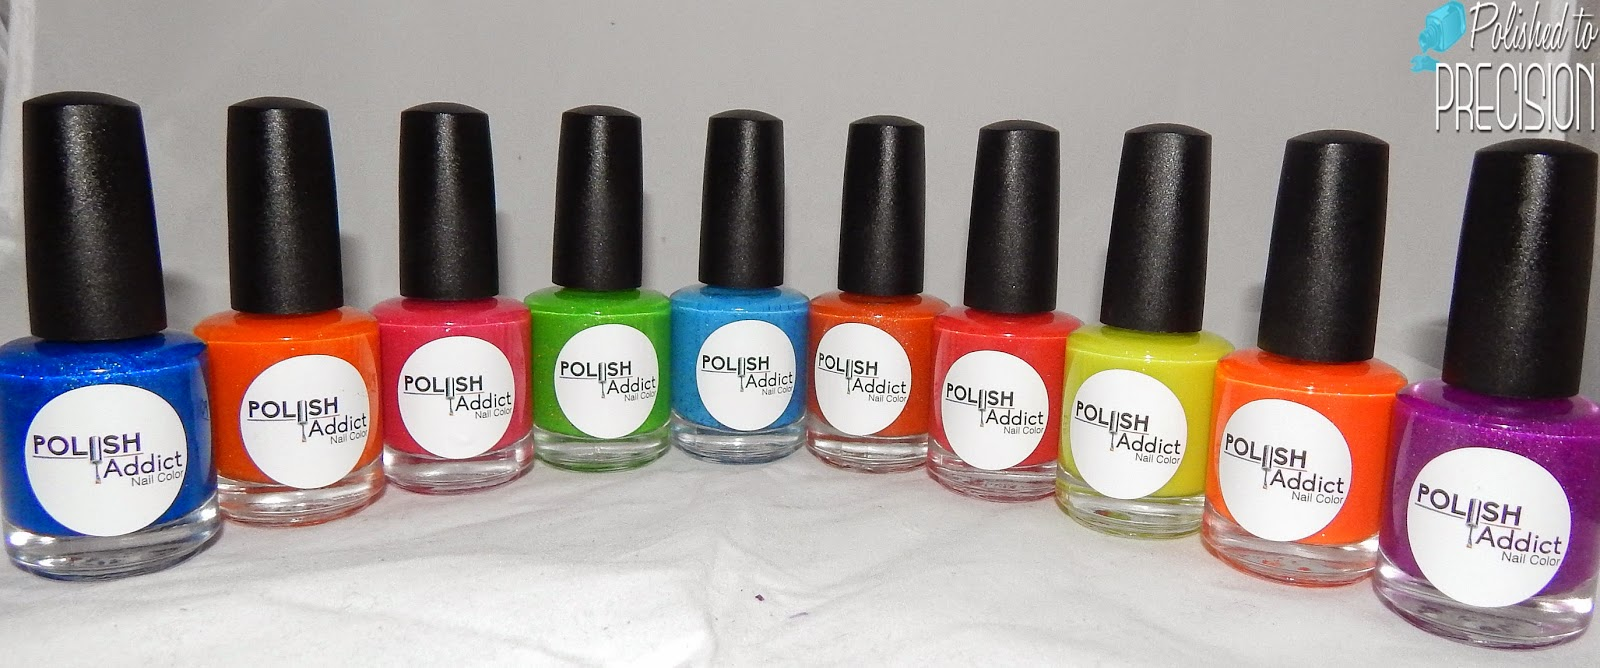 Polish-Addict-Summer-Neons